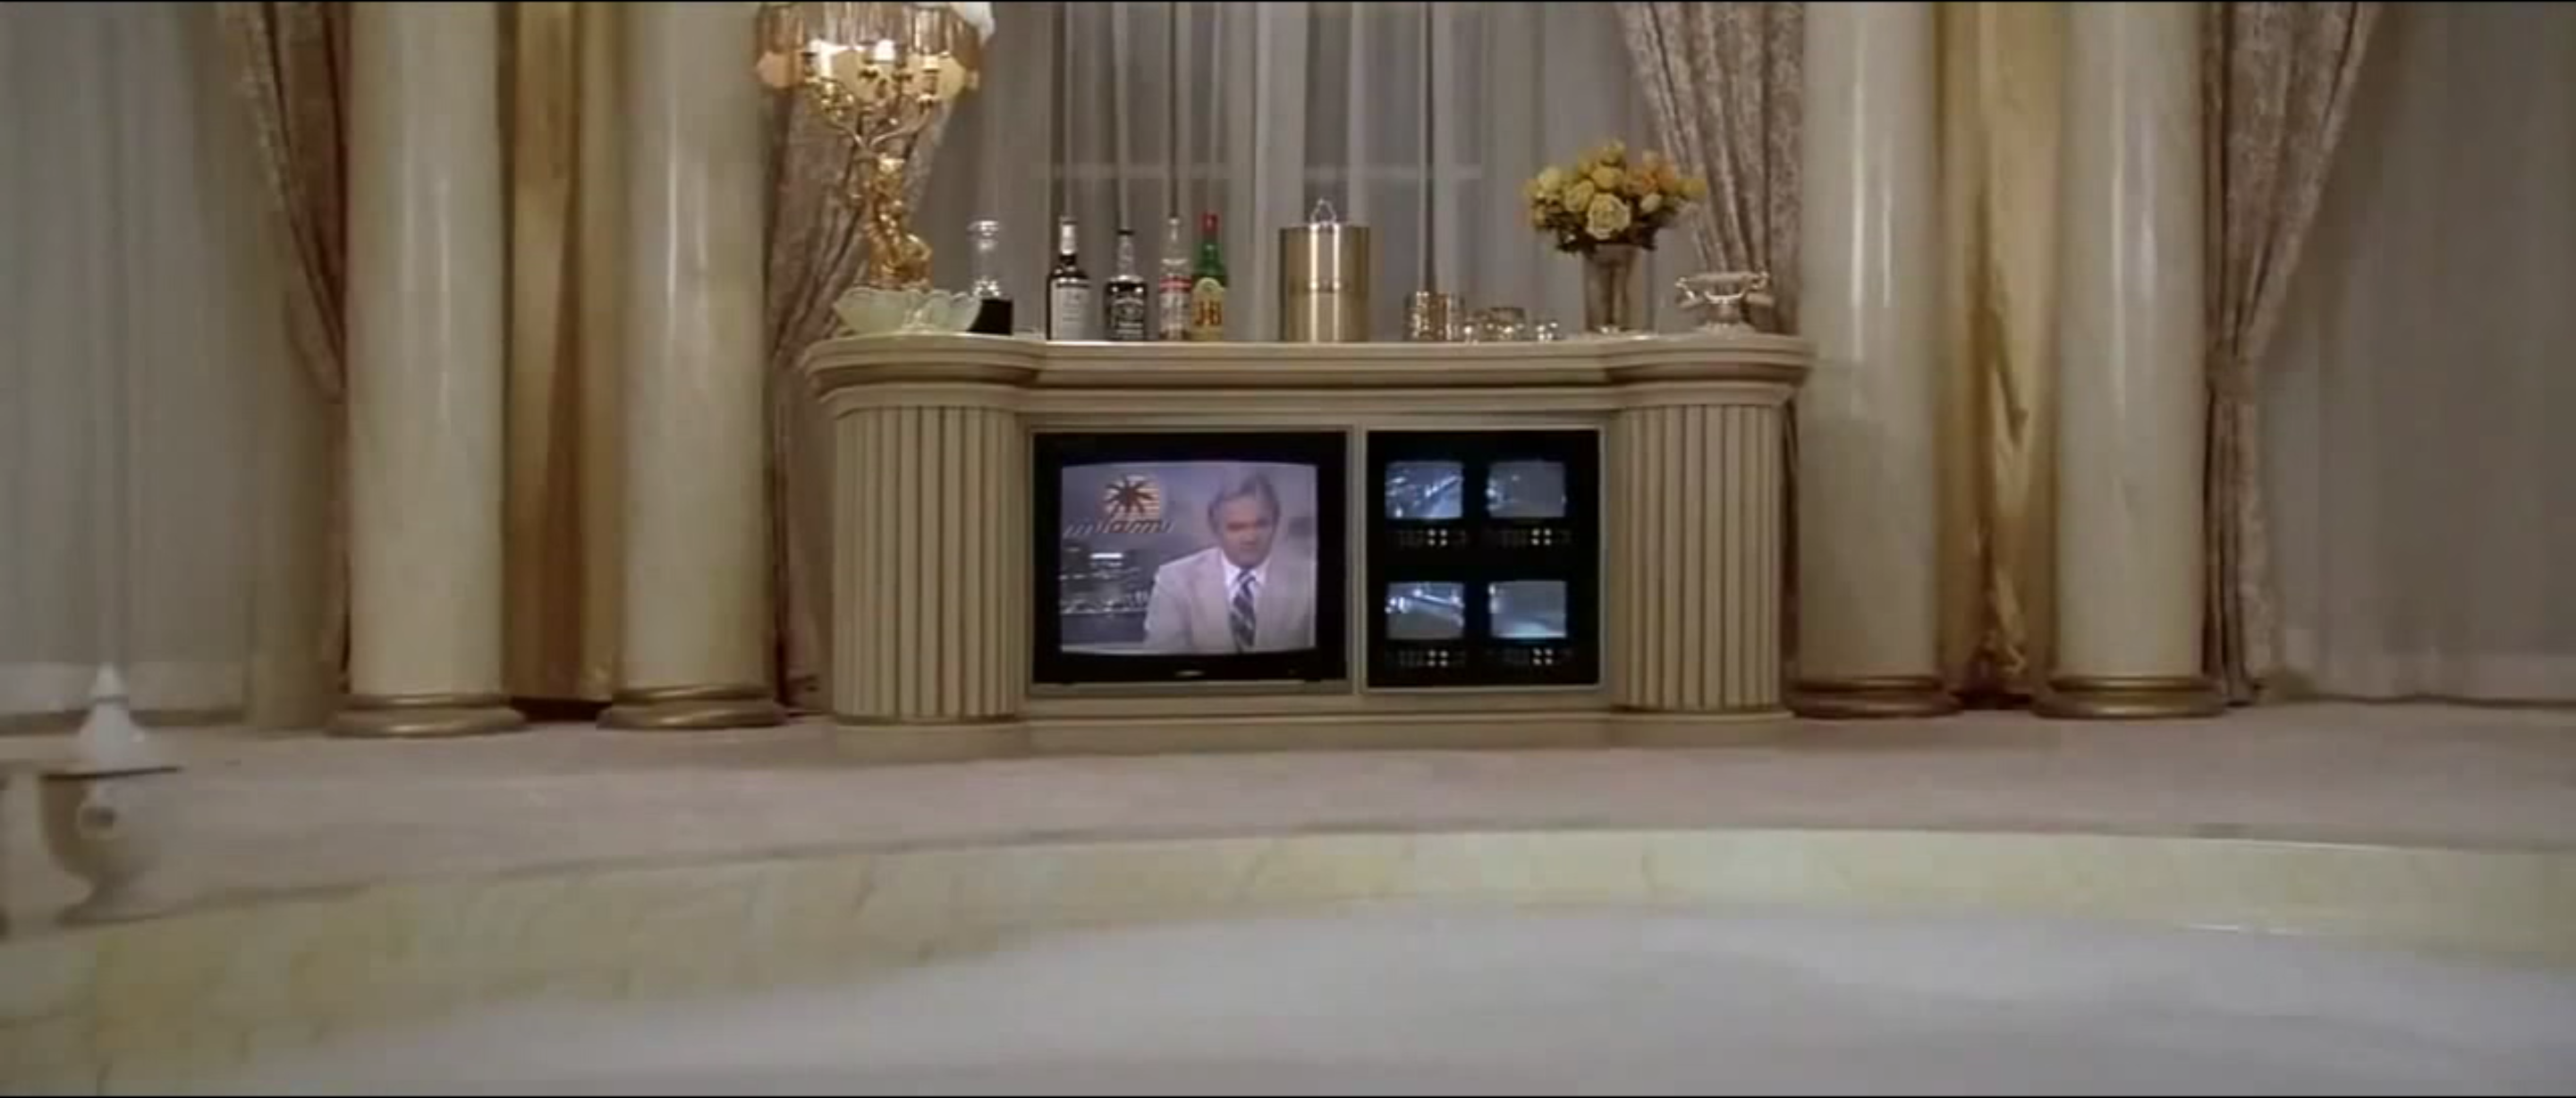 Scarface Bathroom Tv